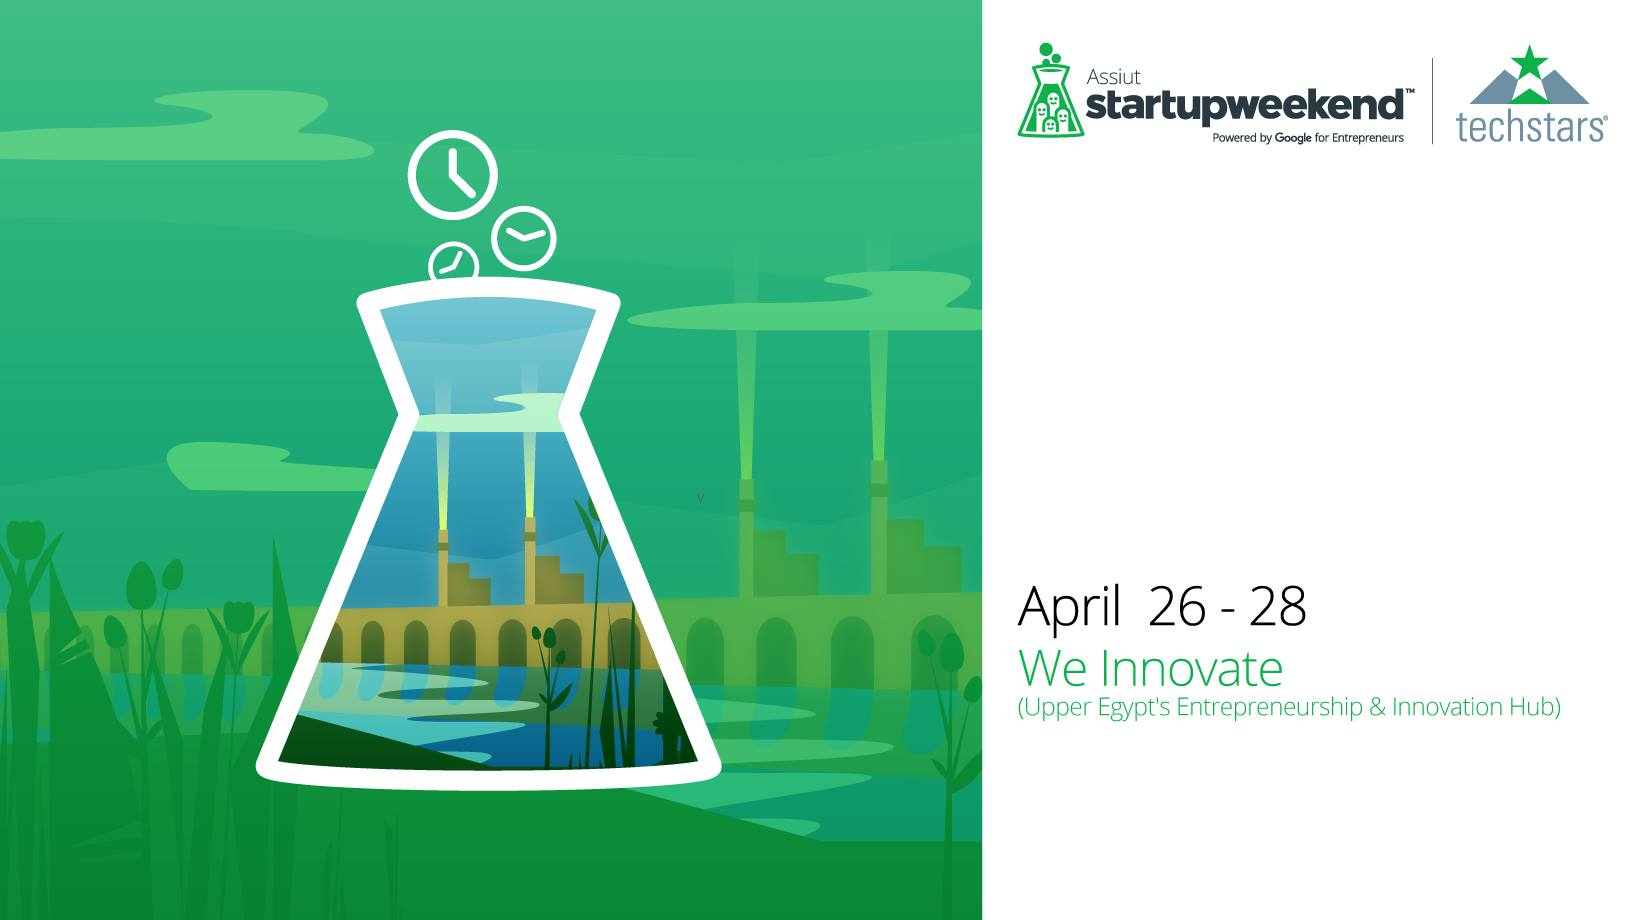 StartupWeekend comes to Assiut